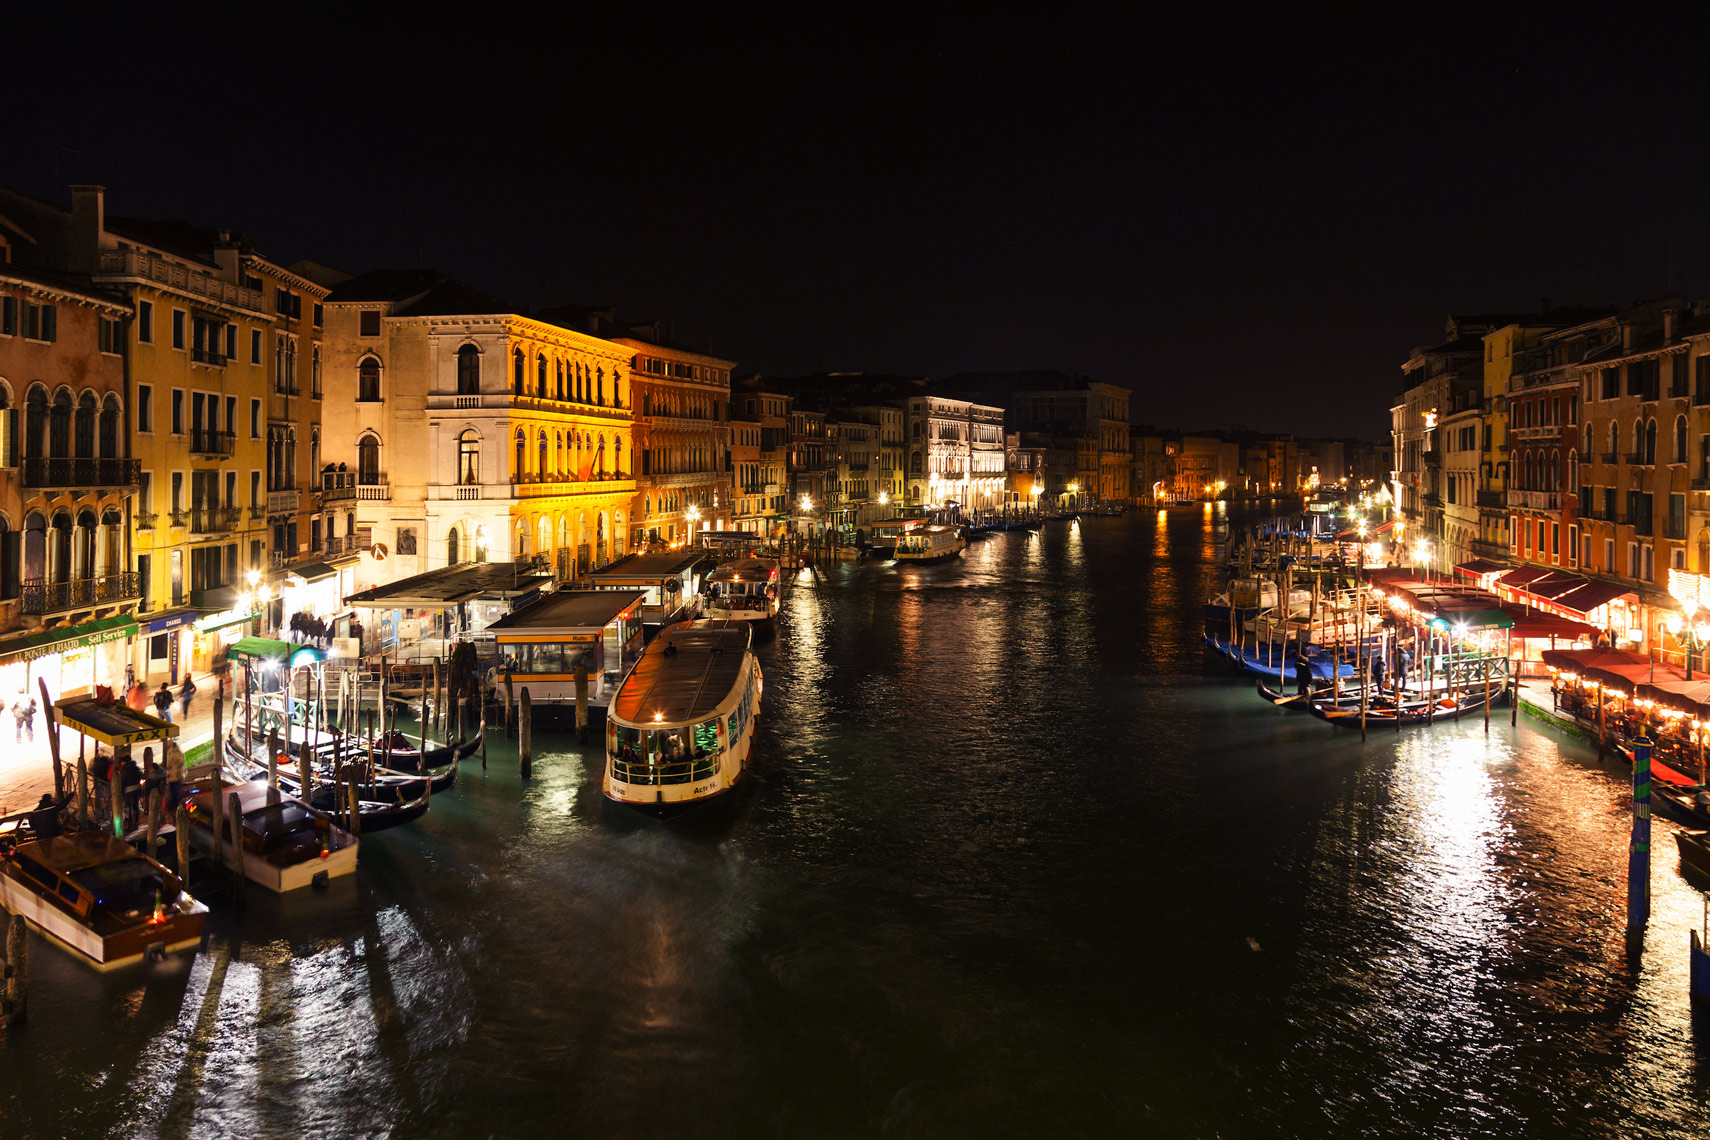 ITALY, Venice. View of the Grand Canal, homes, shops,  and restaurants from the Rialto Bridge at night.